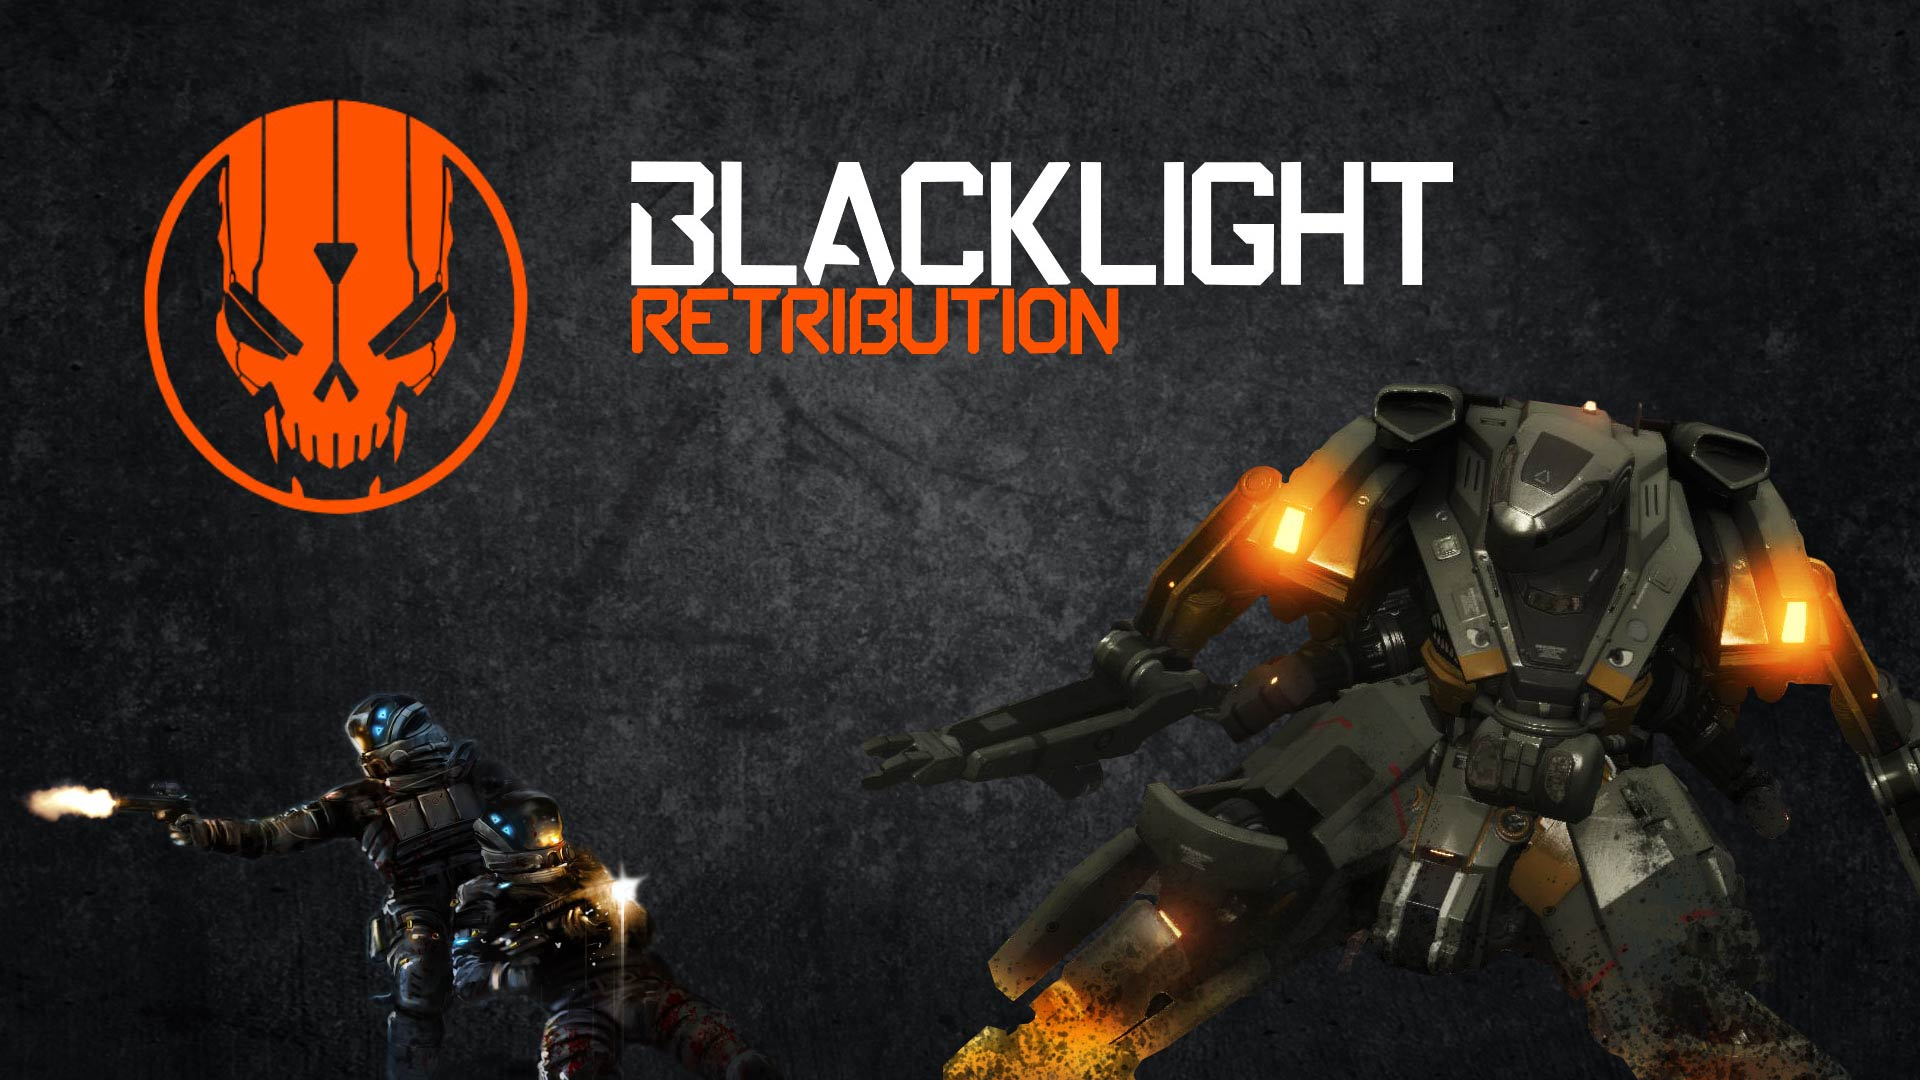 Blacklight-Retribution-Wallpaper